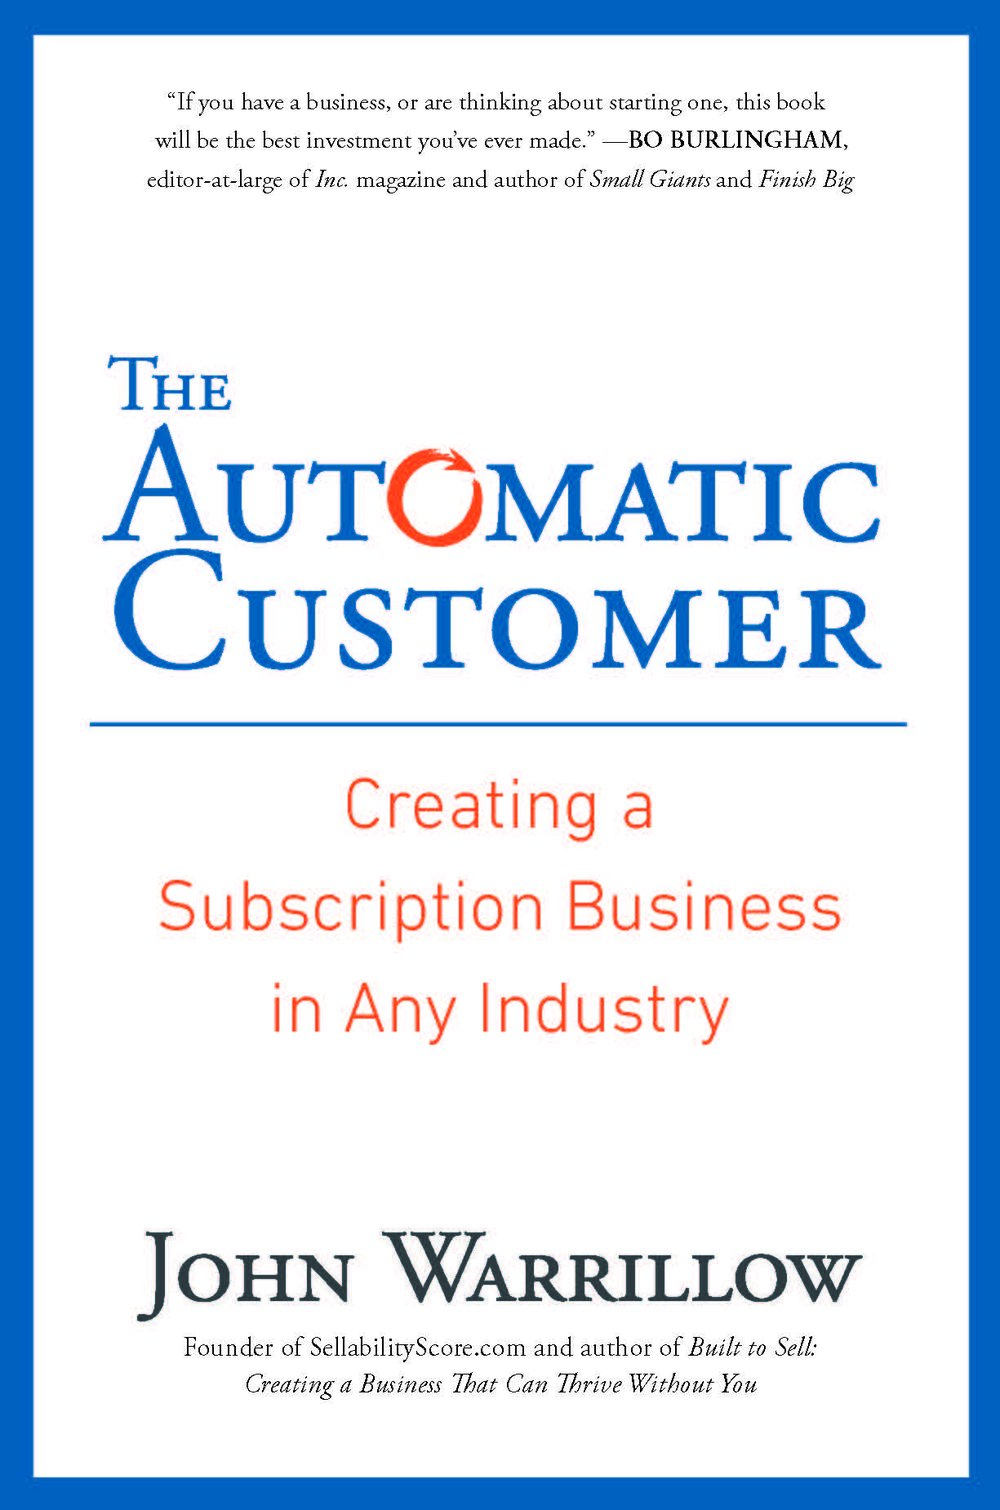 Automatic Customer John Warrillow